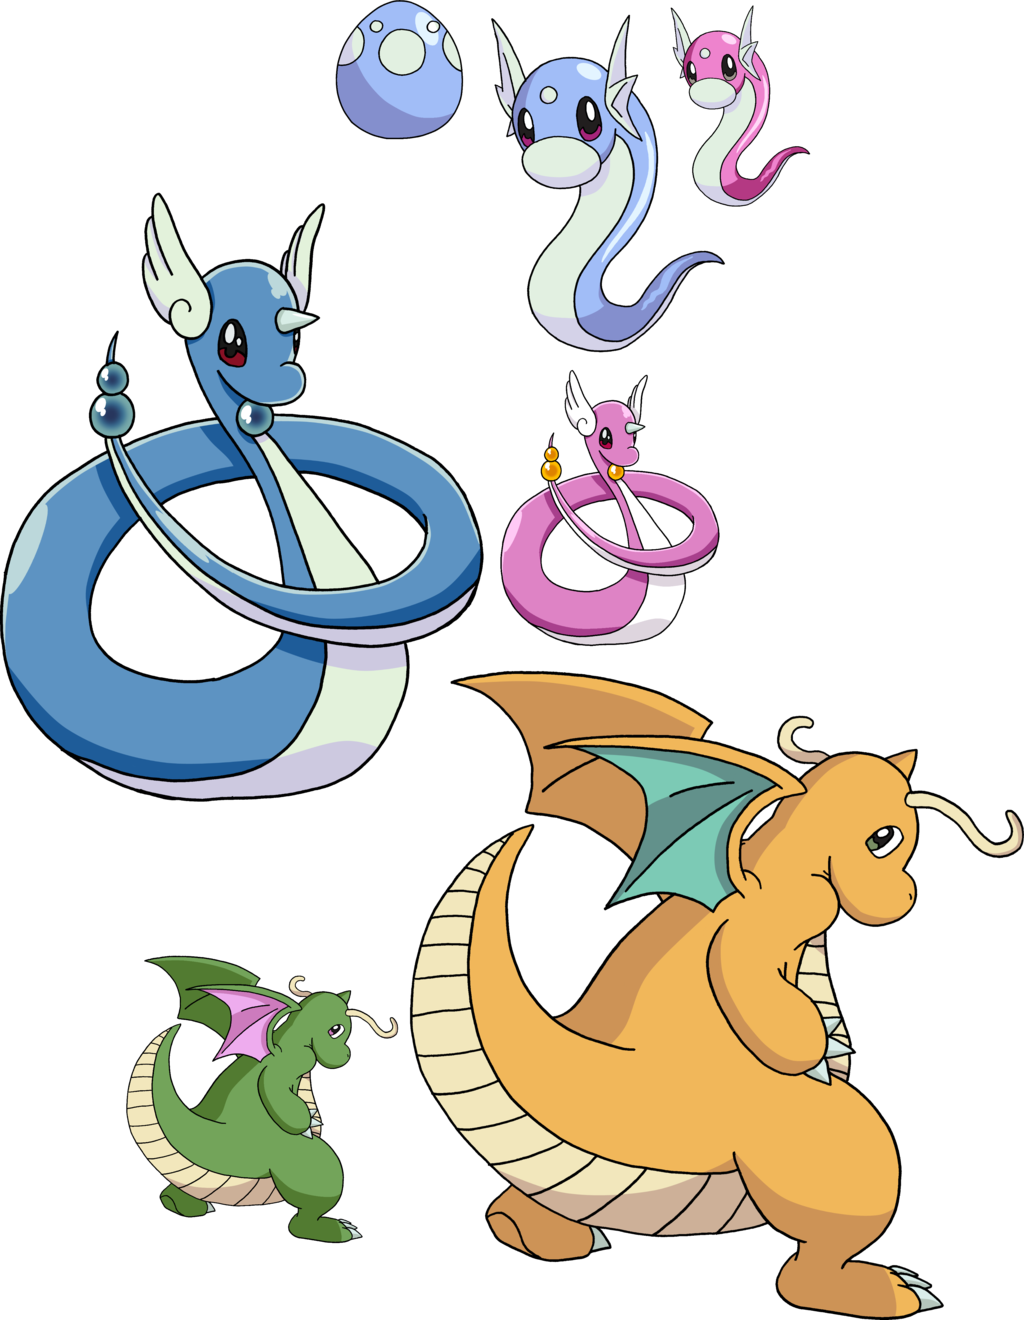 147 148 And 149 Dratini Evolutionary Line By Tails19950 On Deviantart